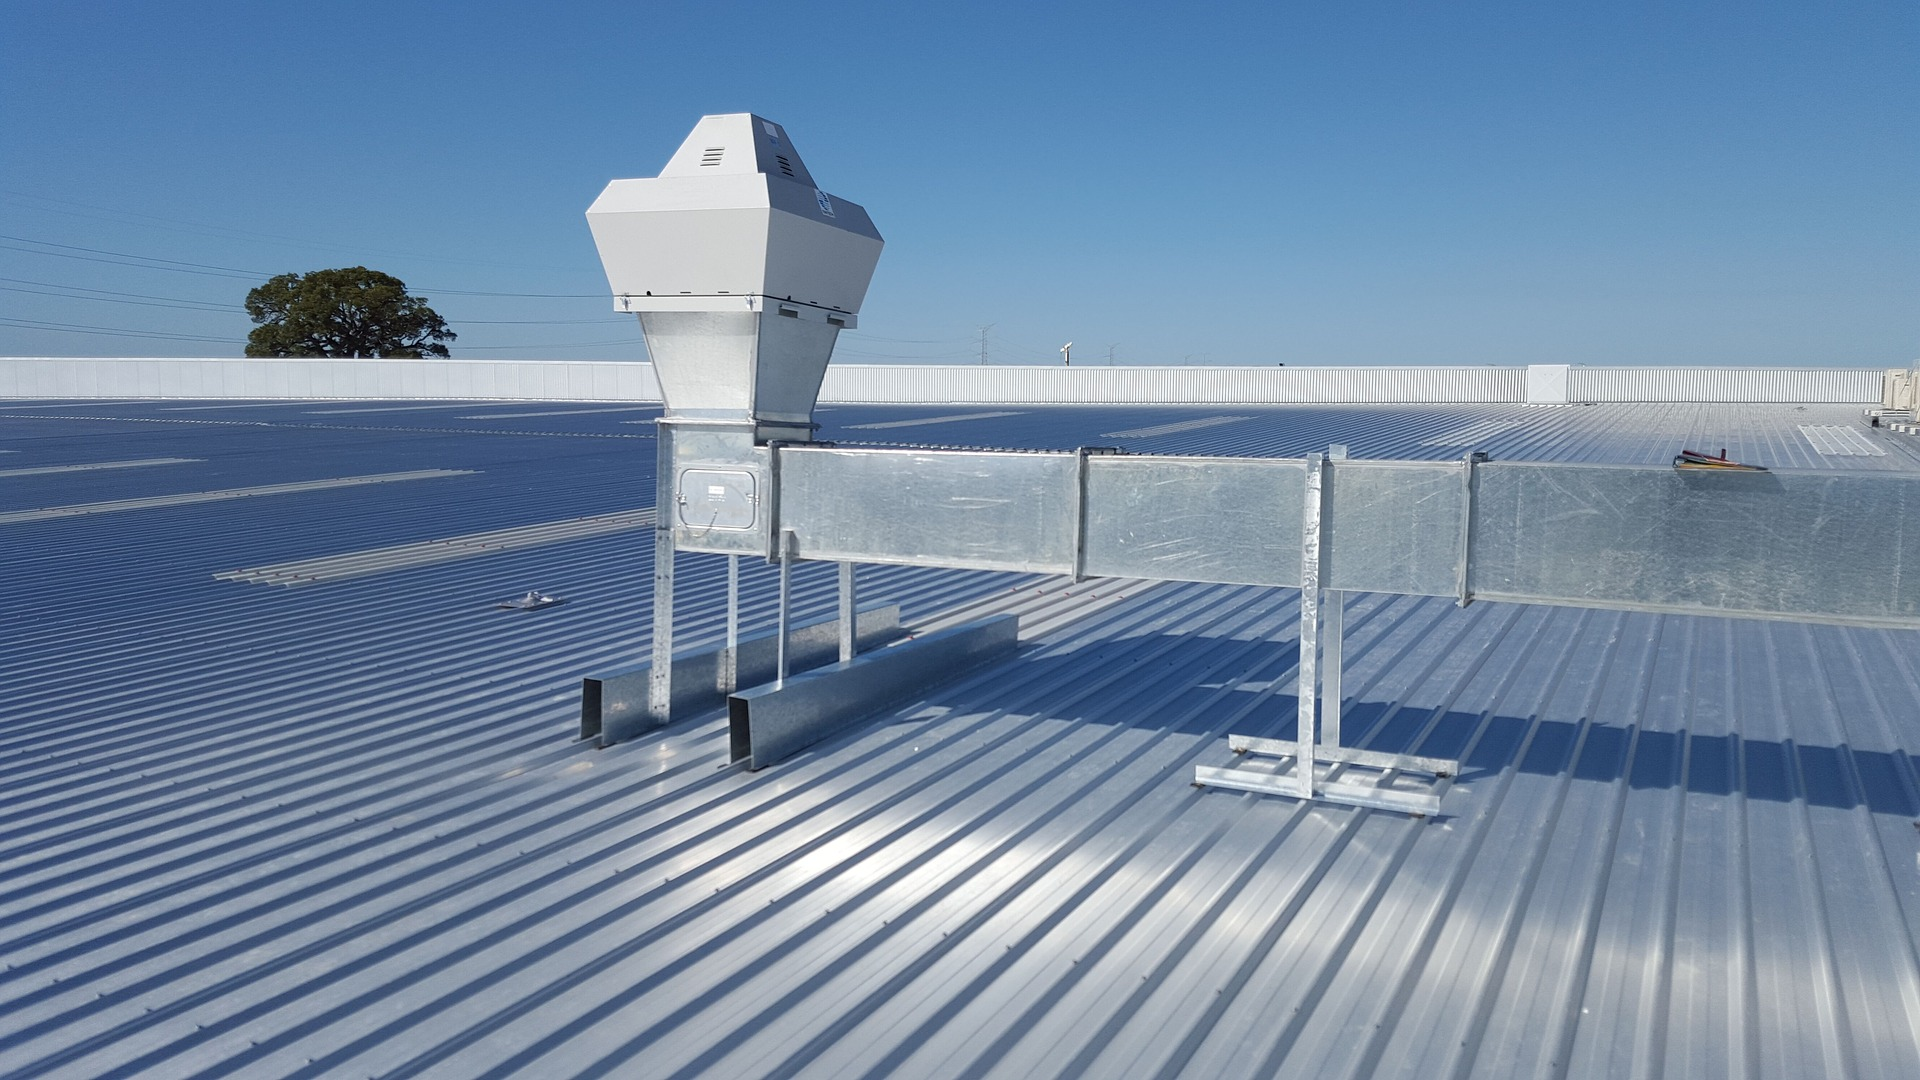 commercial air conditioning on a flat tin roof